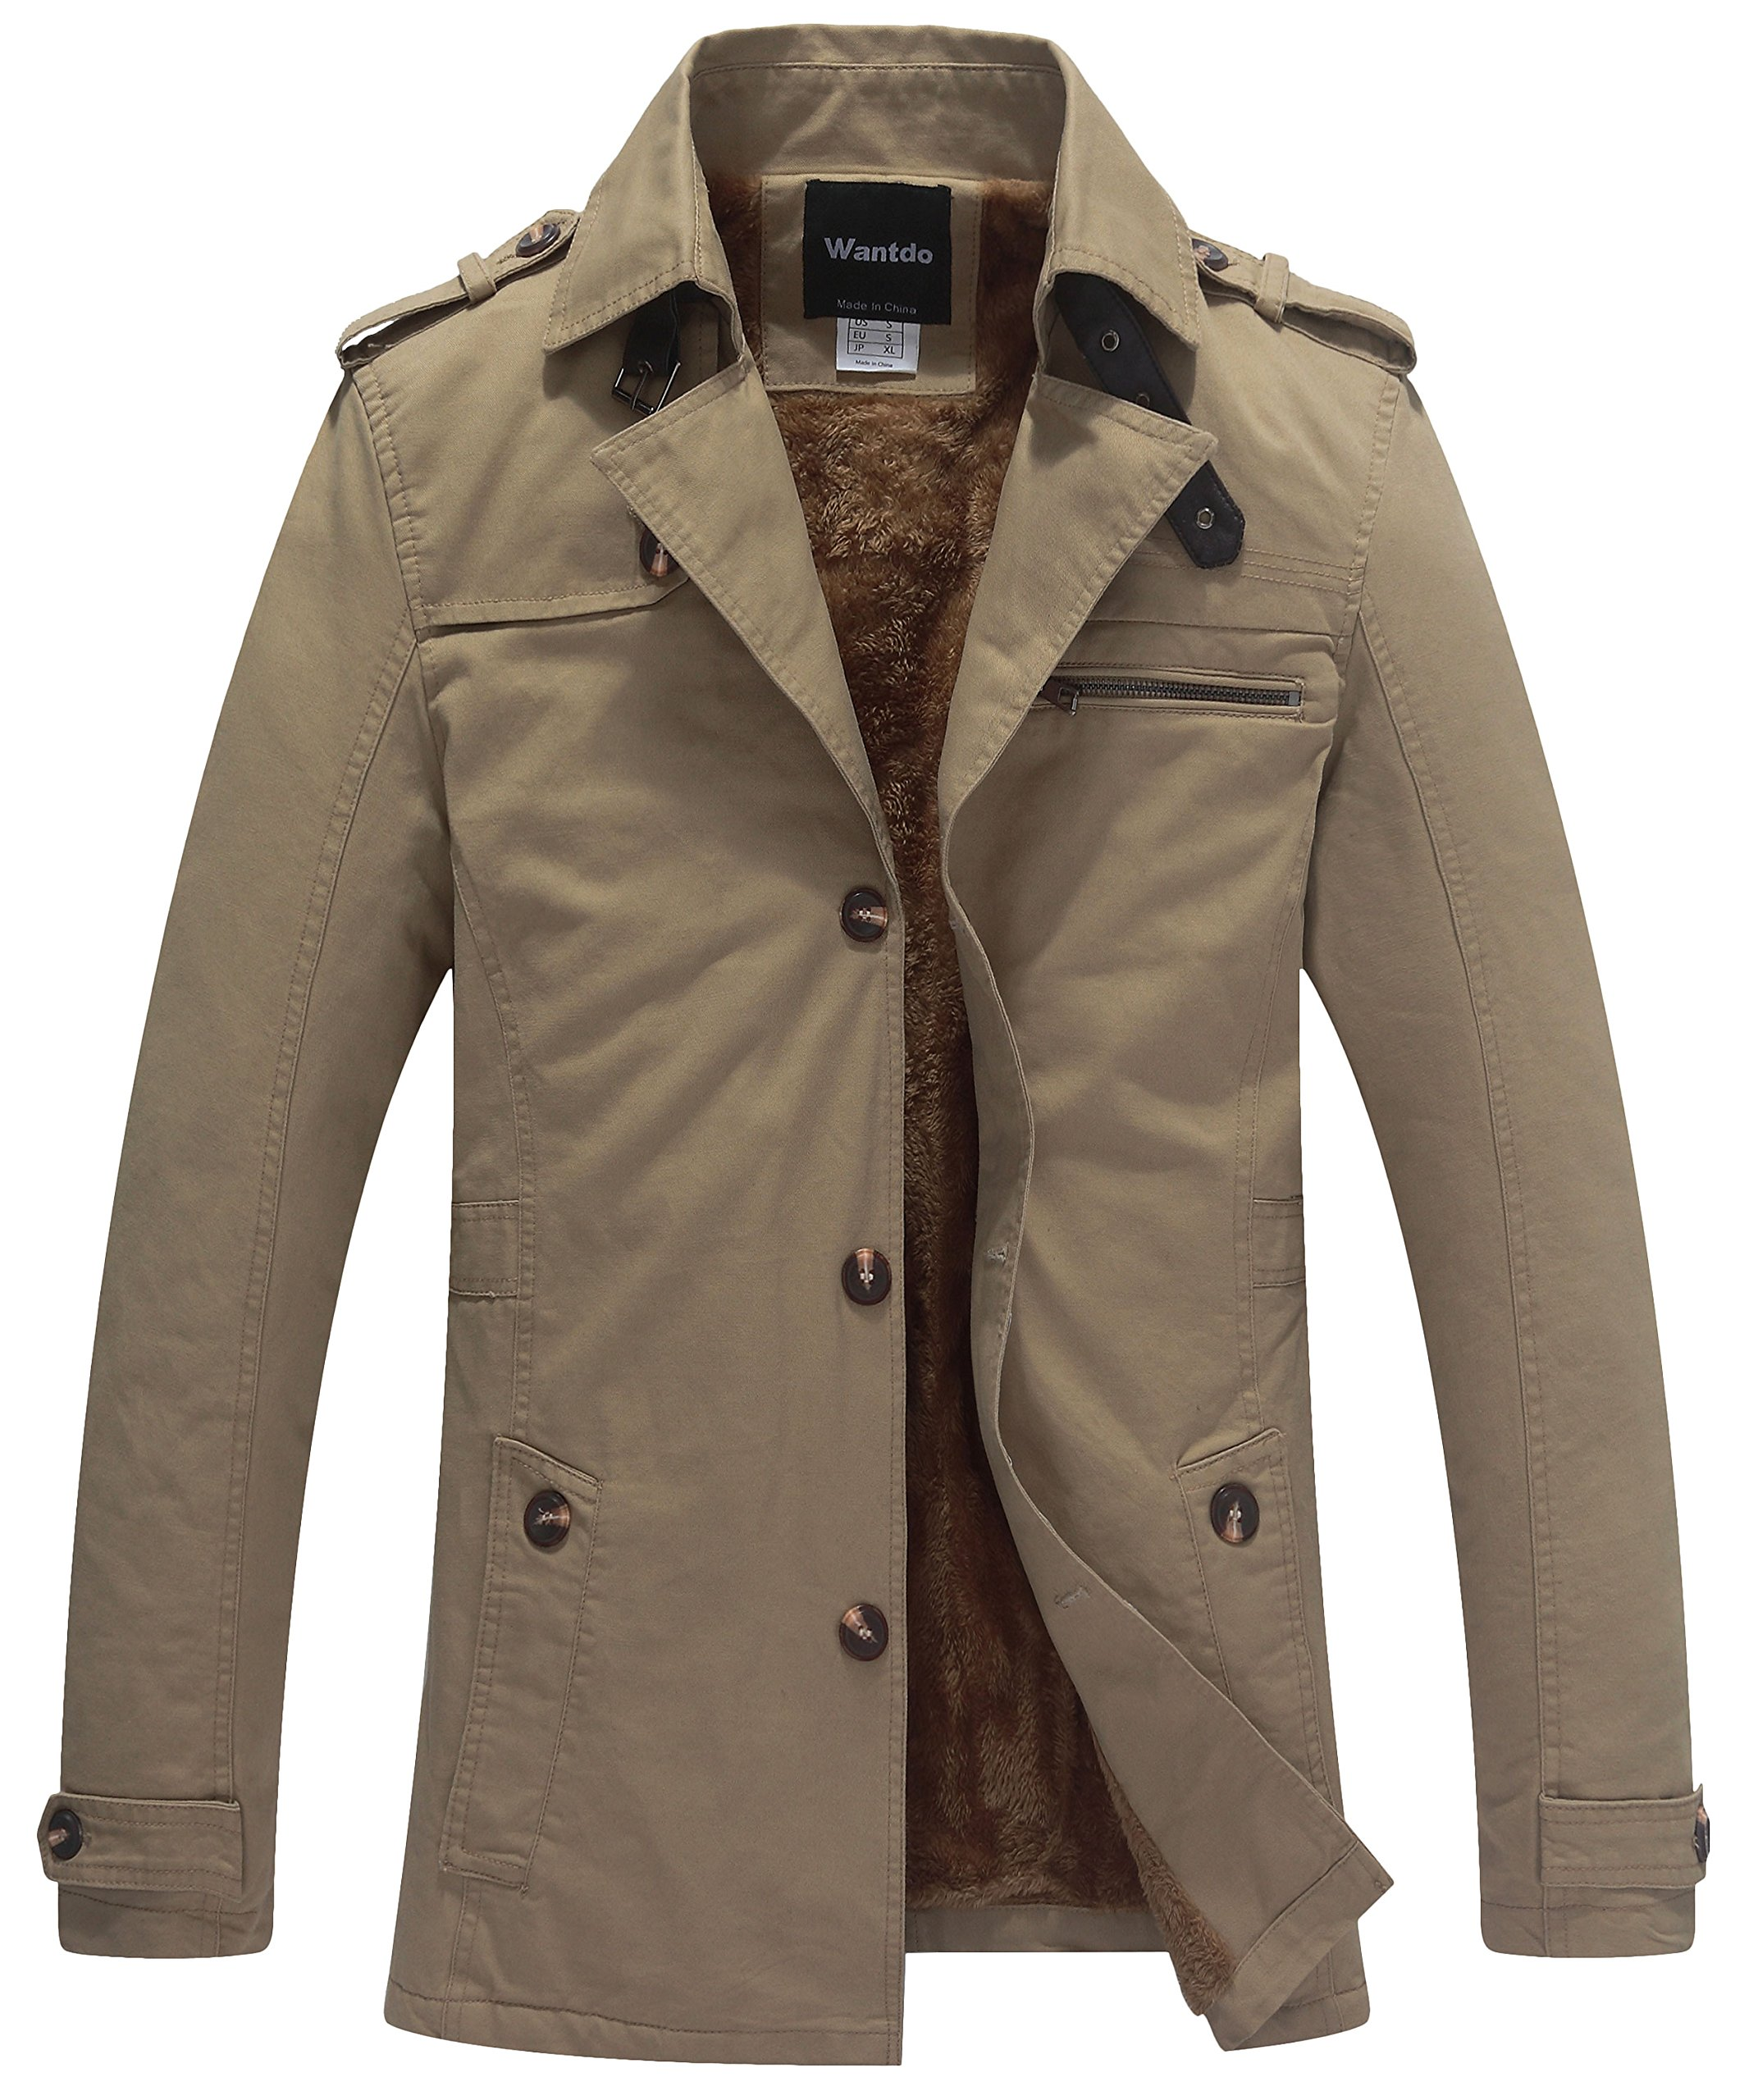 Wantdo Men's Casual Winter Thicken Jacket (Khaki 1, Small) by Wantdo